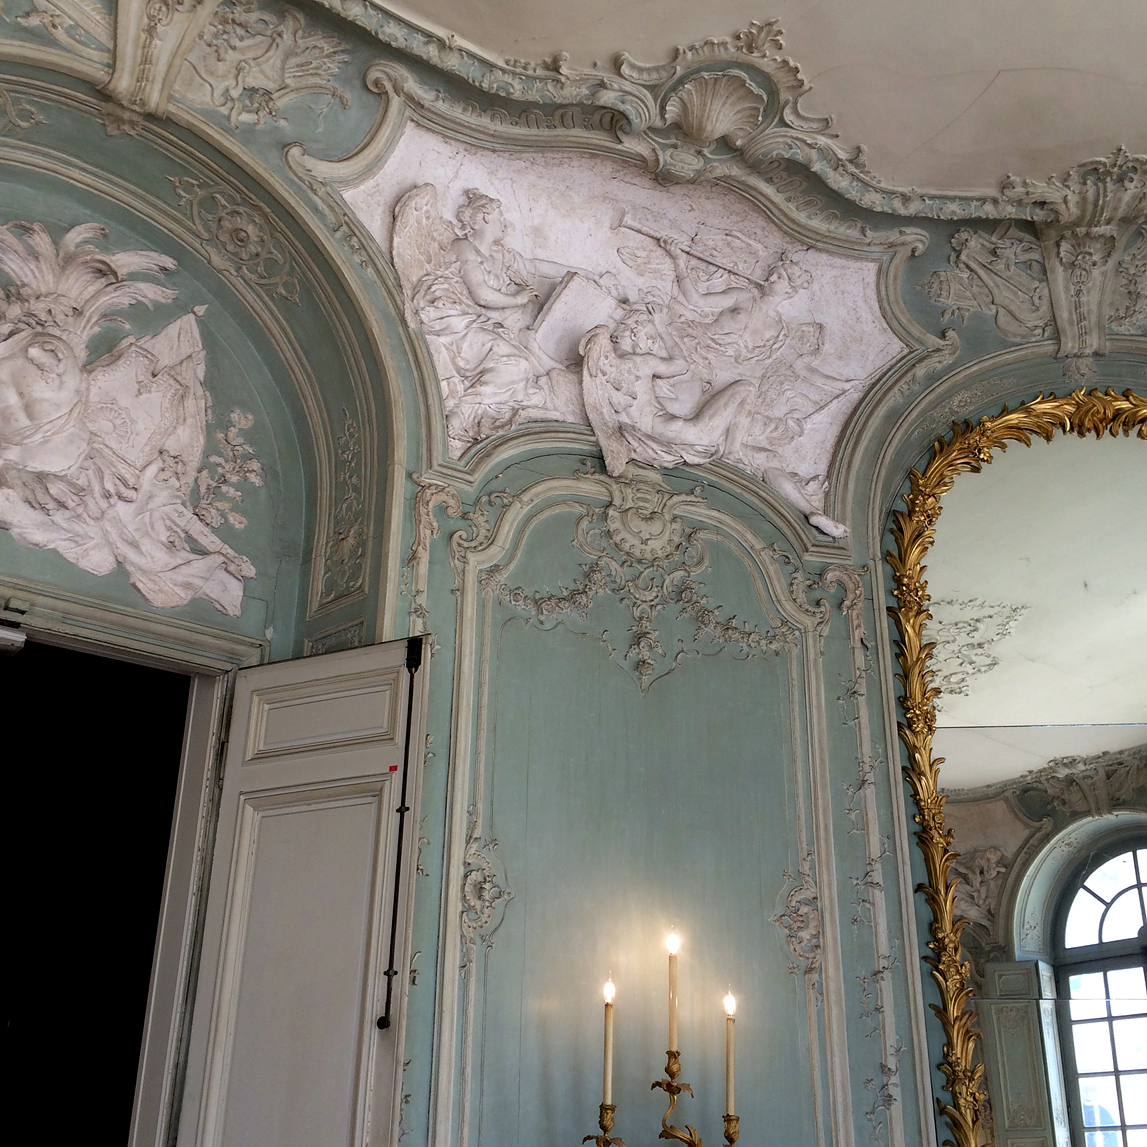 (above) Another detail of the Prince of Soubise's oval salon.